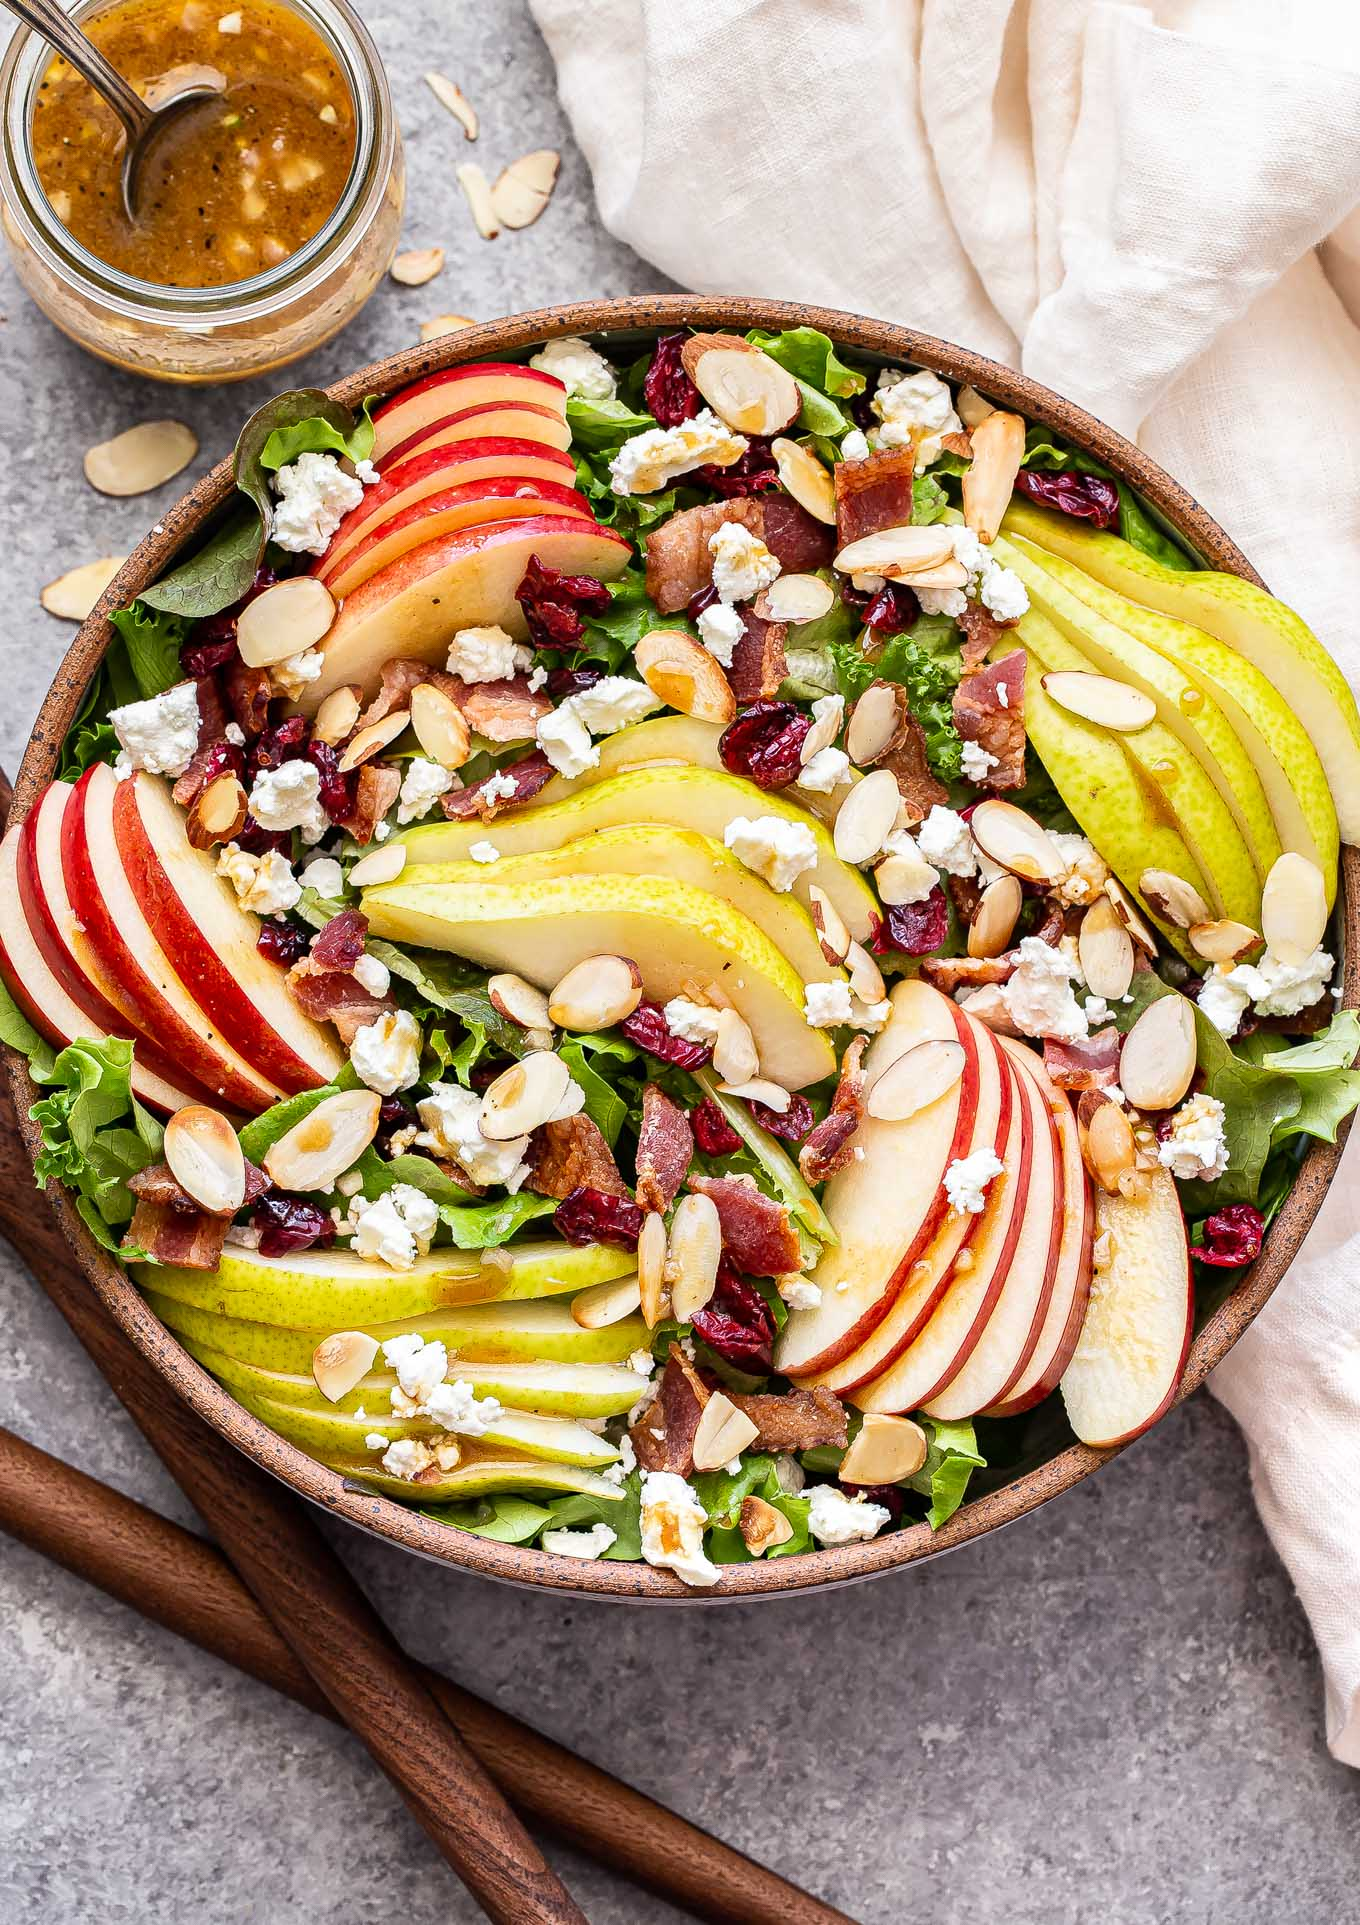 Autumn Apple and Pear Salad in a serving bowl with wooden spoons next to it and cider vinaigrette behind it.